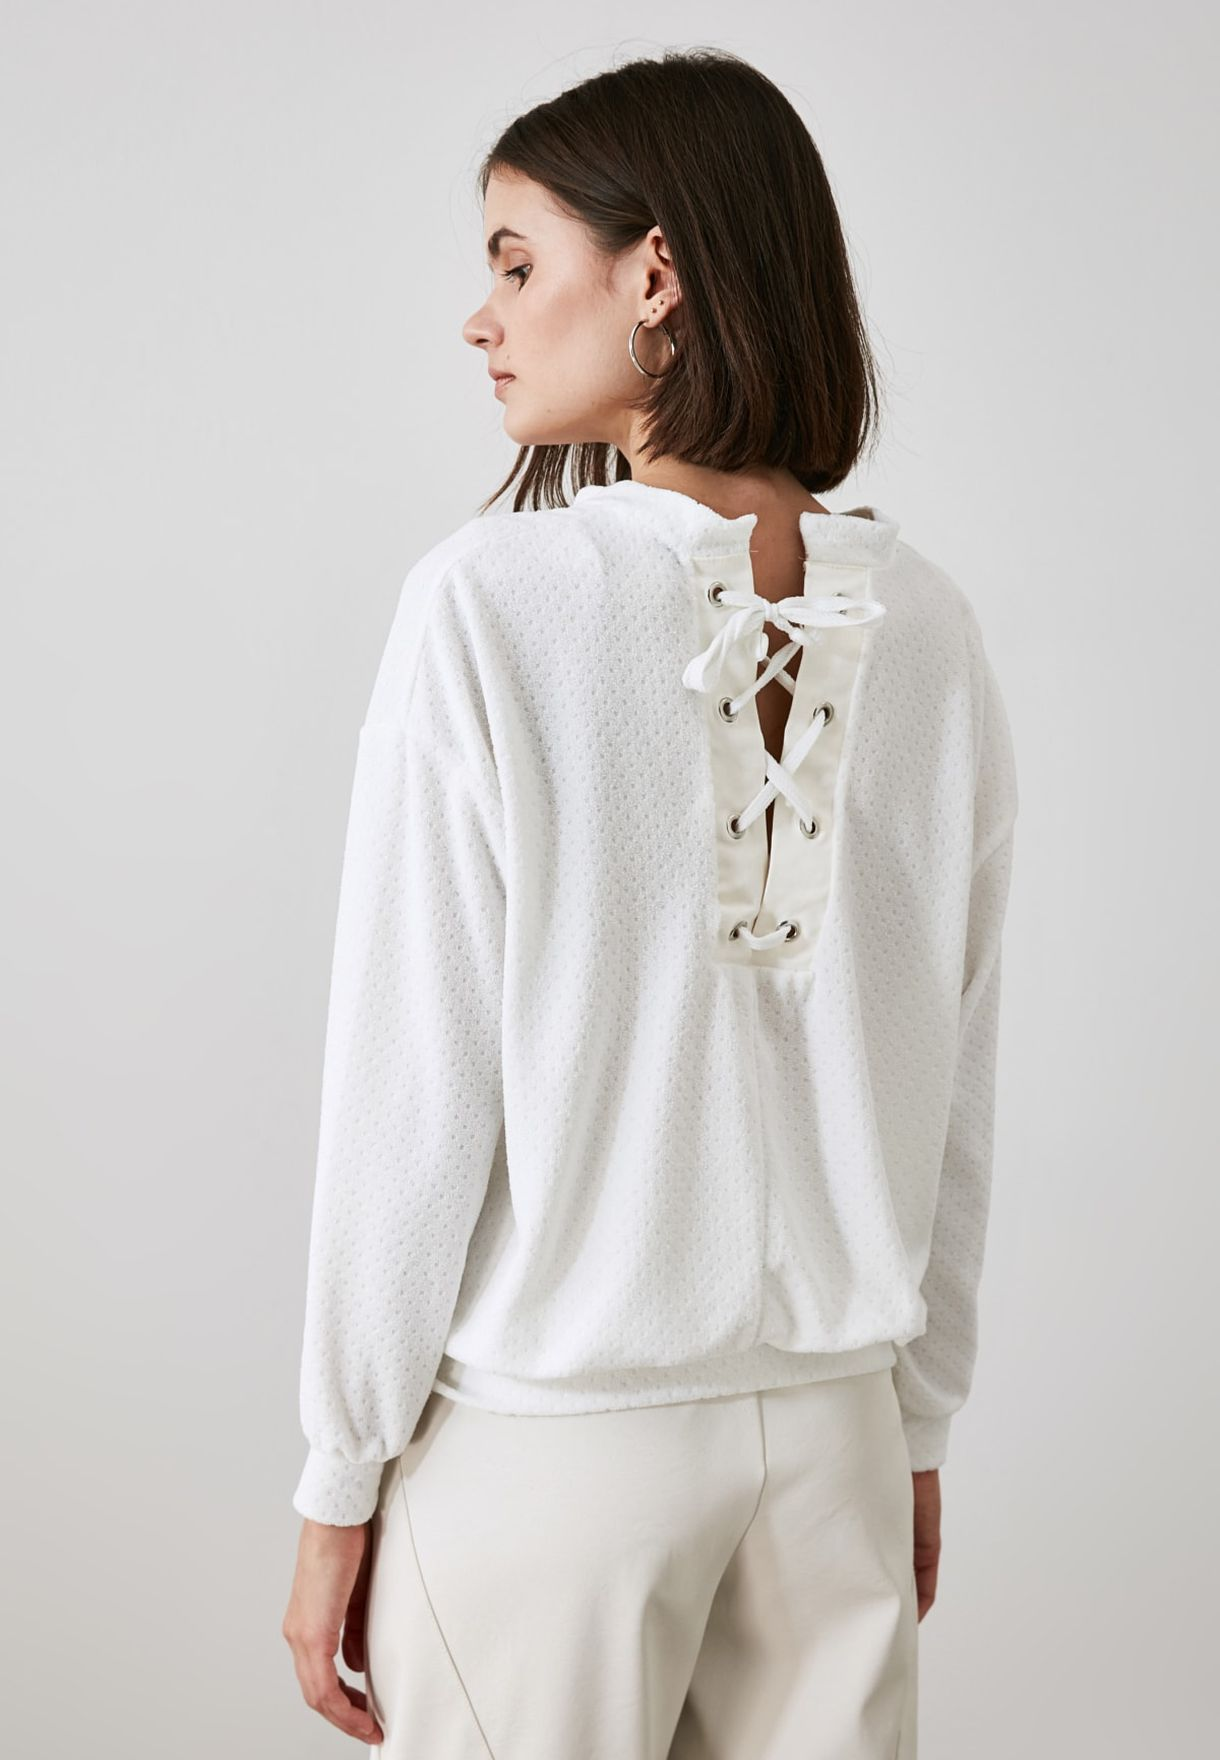 Lace Detail Knitted Sweatshirt